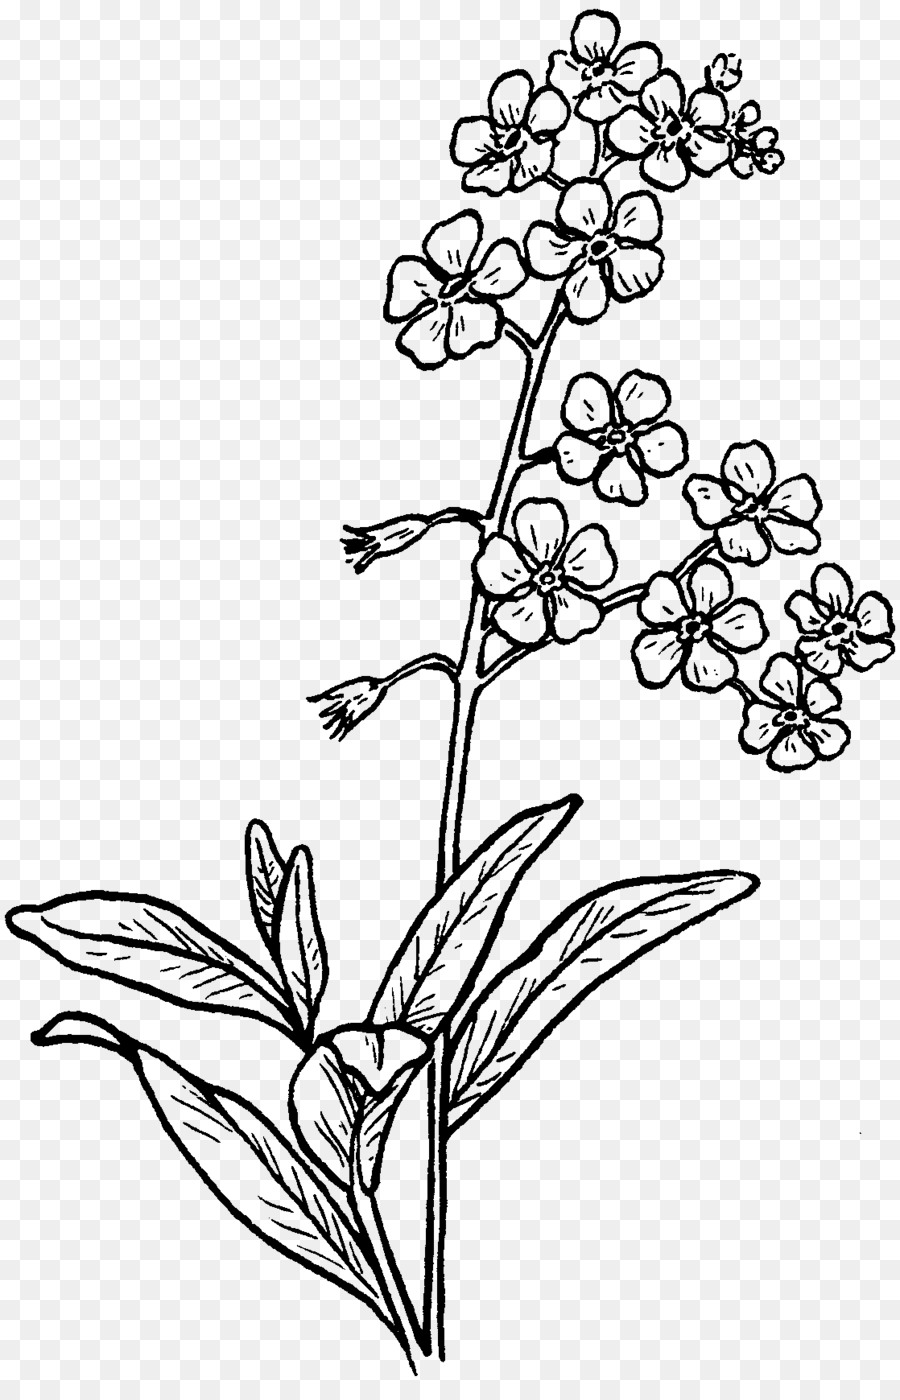 Drawing myosotis scorpioides sketch jasmine flower png download drawing myosotis scorpioides sketch jasmine flower izmirmasajfo